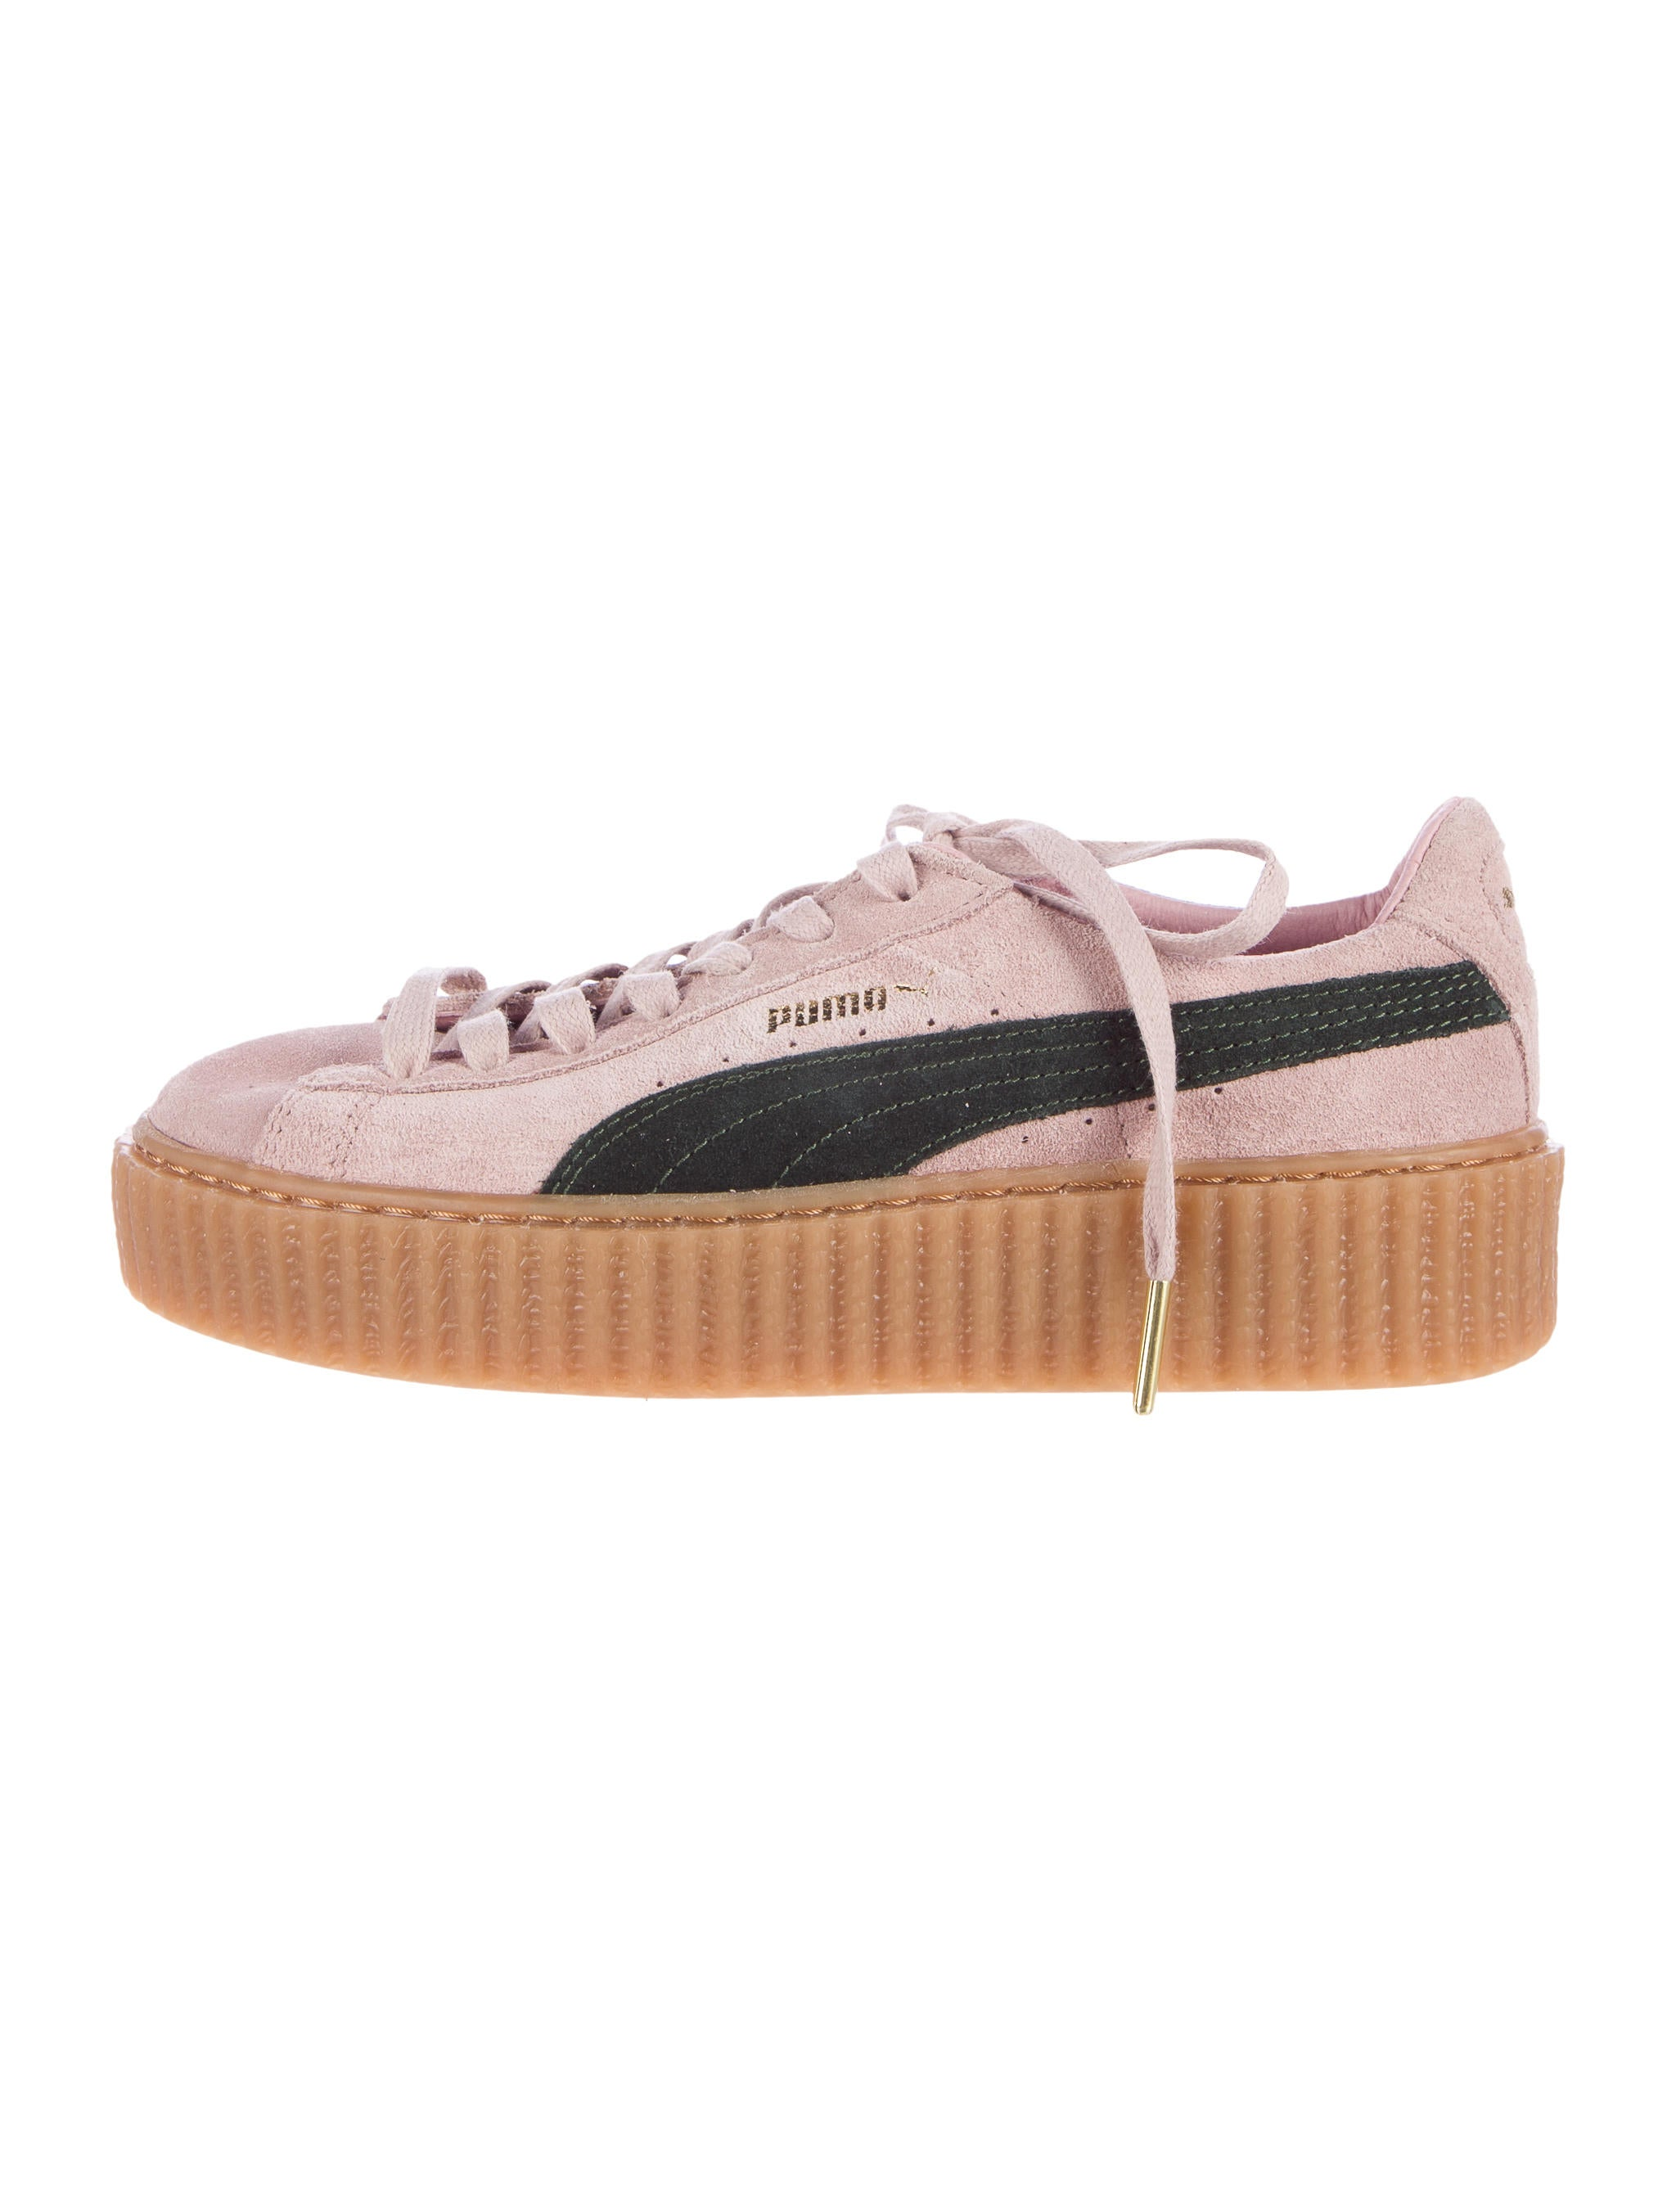 puma x fenty fenty creeper sneakers shoes wpmfy20001. Black Bedroom Furniture Sets. Home Design Ideas